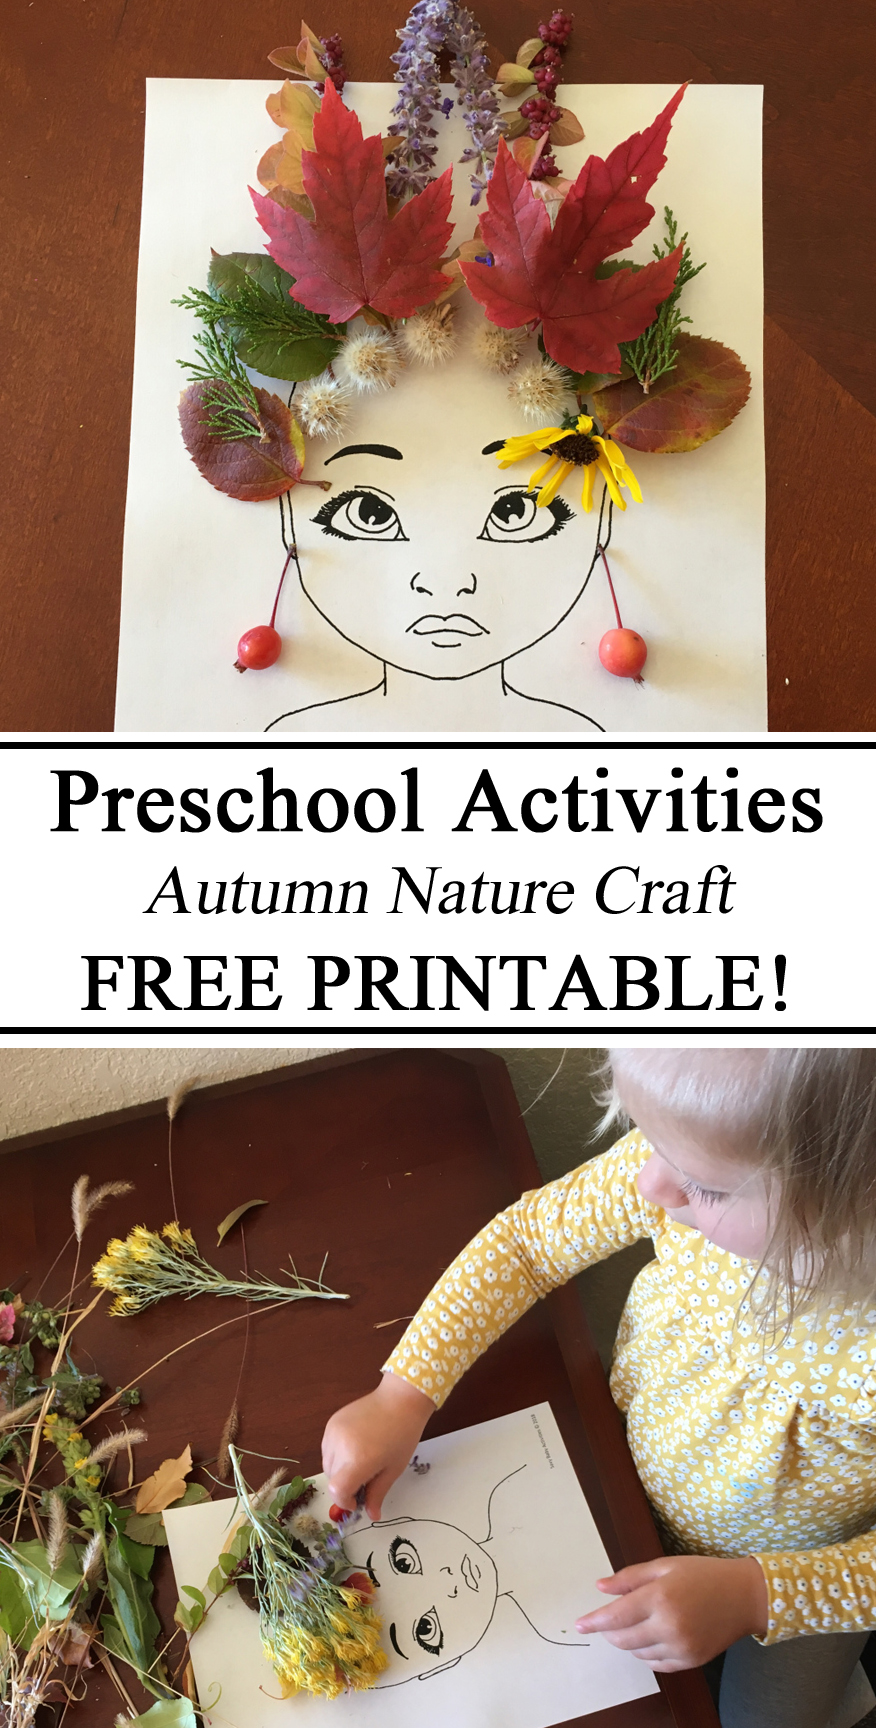 Free Printable, Free Printables, Leaf People, Art, Nature Art, Toddler, Preschool Activities, Activity, Montessori, Waldorf, Resources, Parents, Teachers, DIY